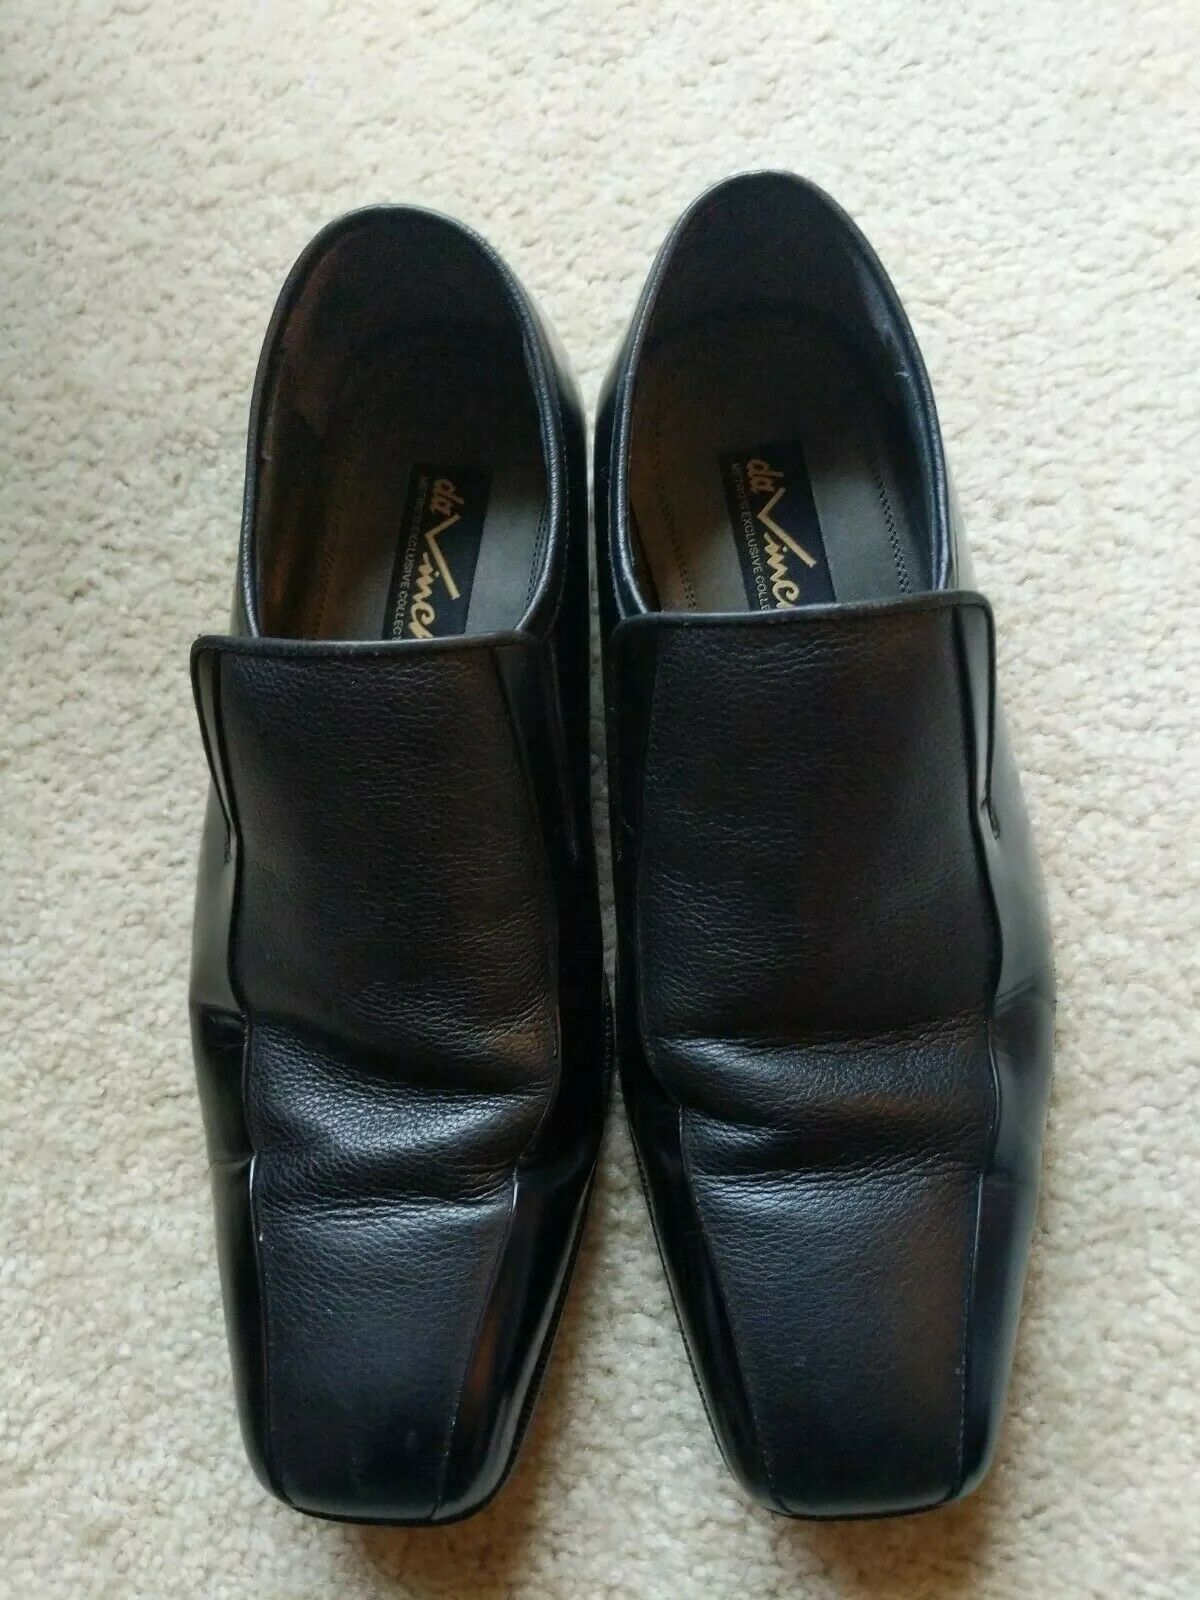 DaVinci Metro Exclusive Collection Size 40 To U.S. Men's 9 Dress shoes Great